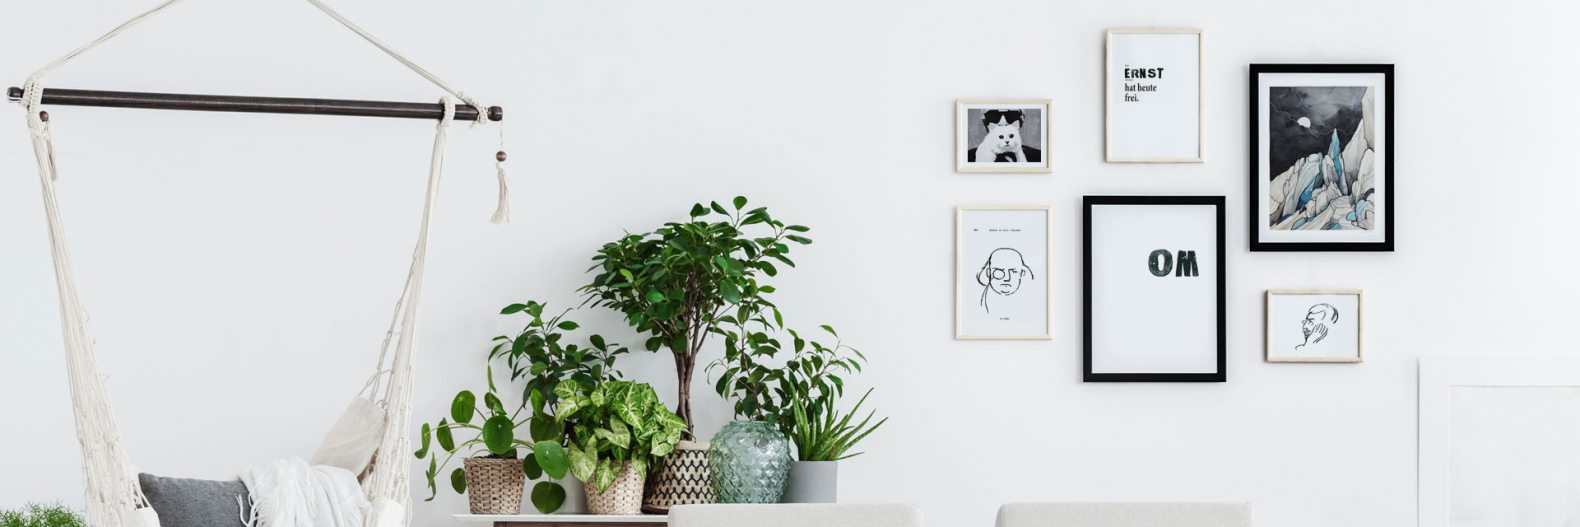 Buy artwork from graphics and illustration as a wall print